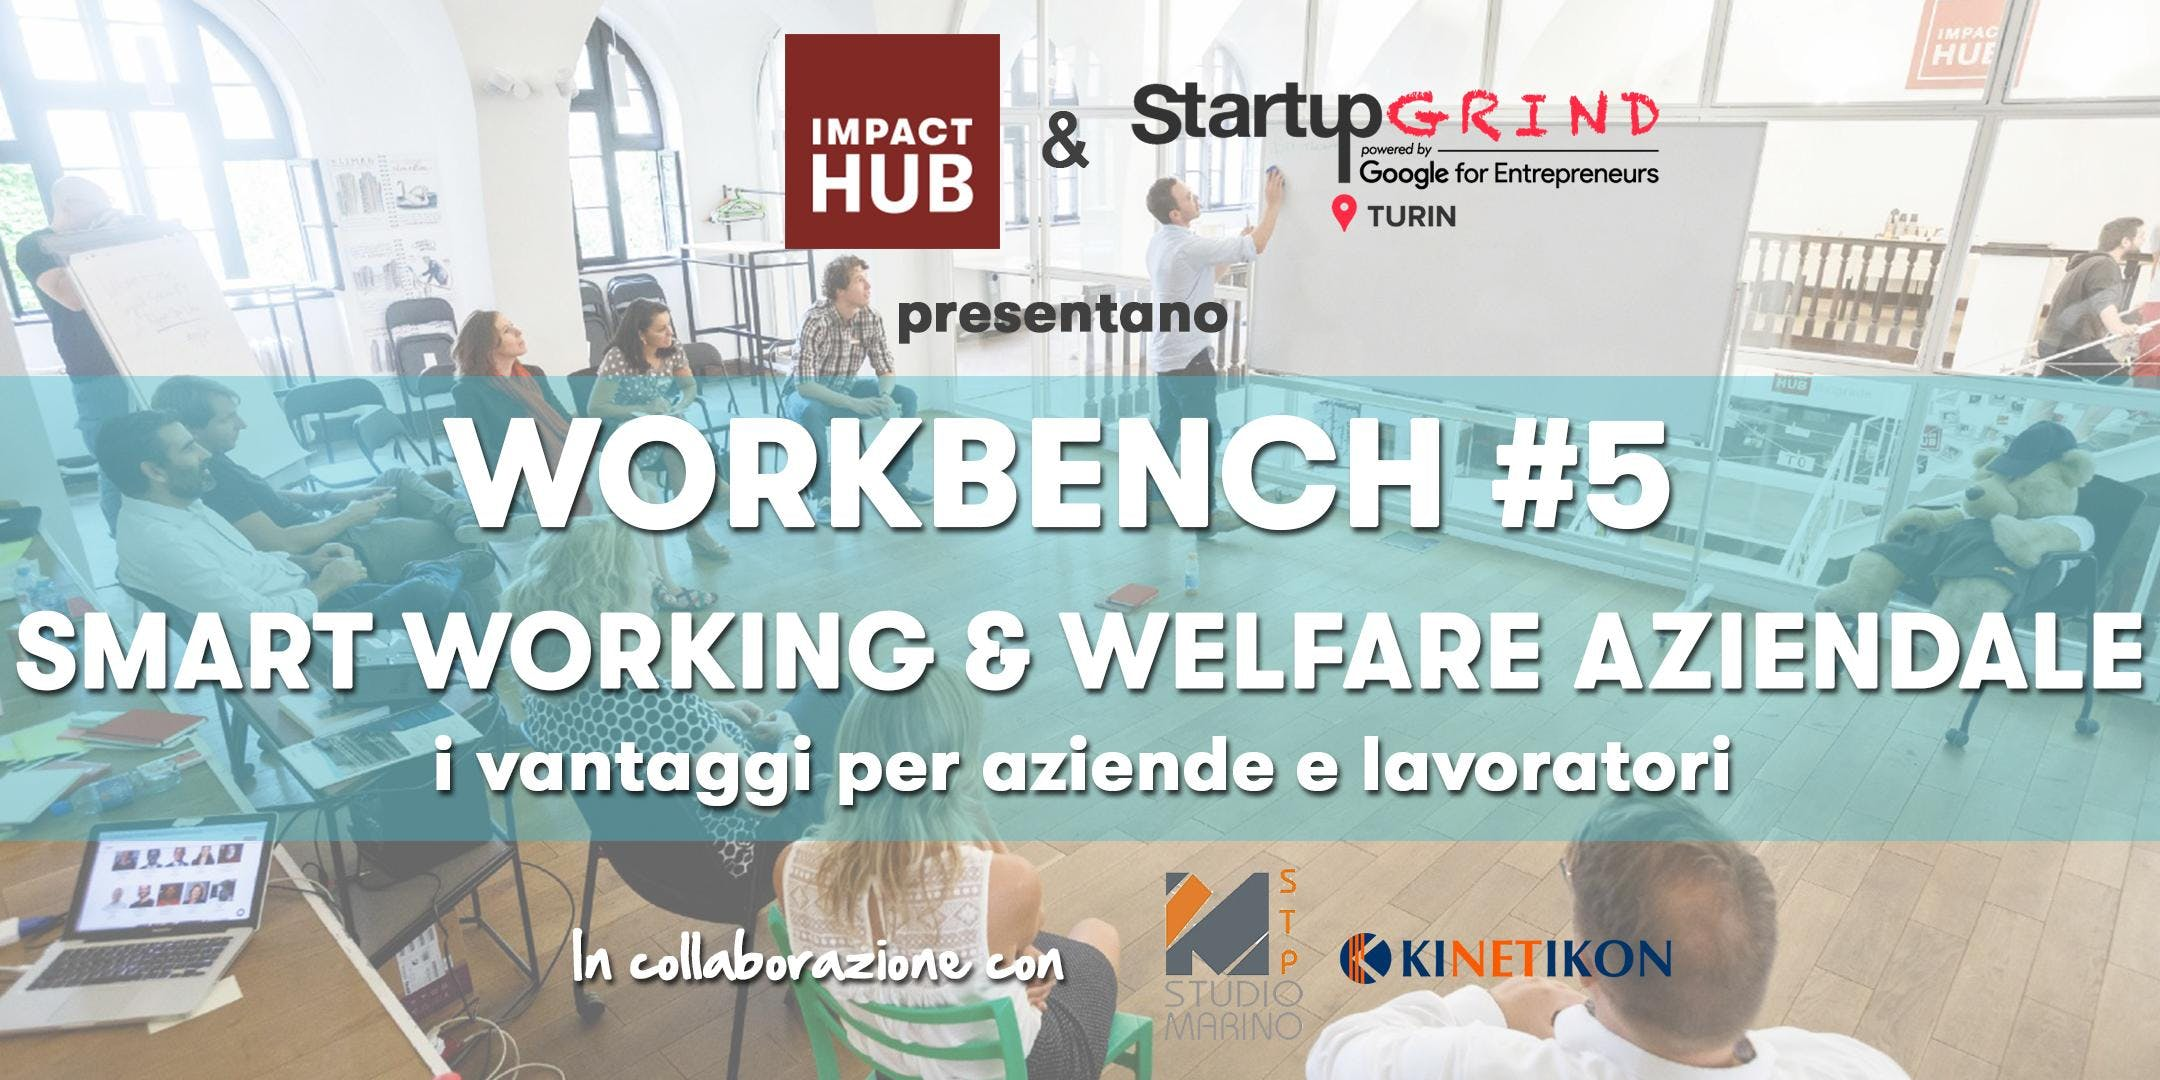 Impact Hub Workbench#5 | SMART WORKING & WELFARE AZIENDALE